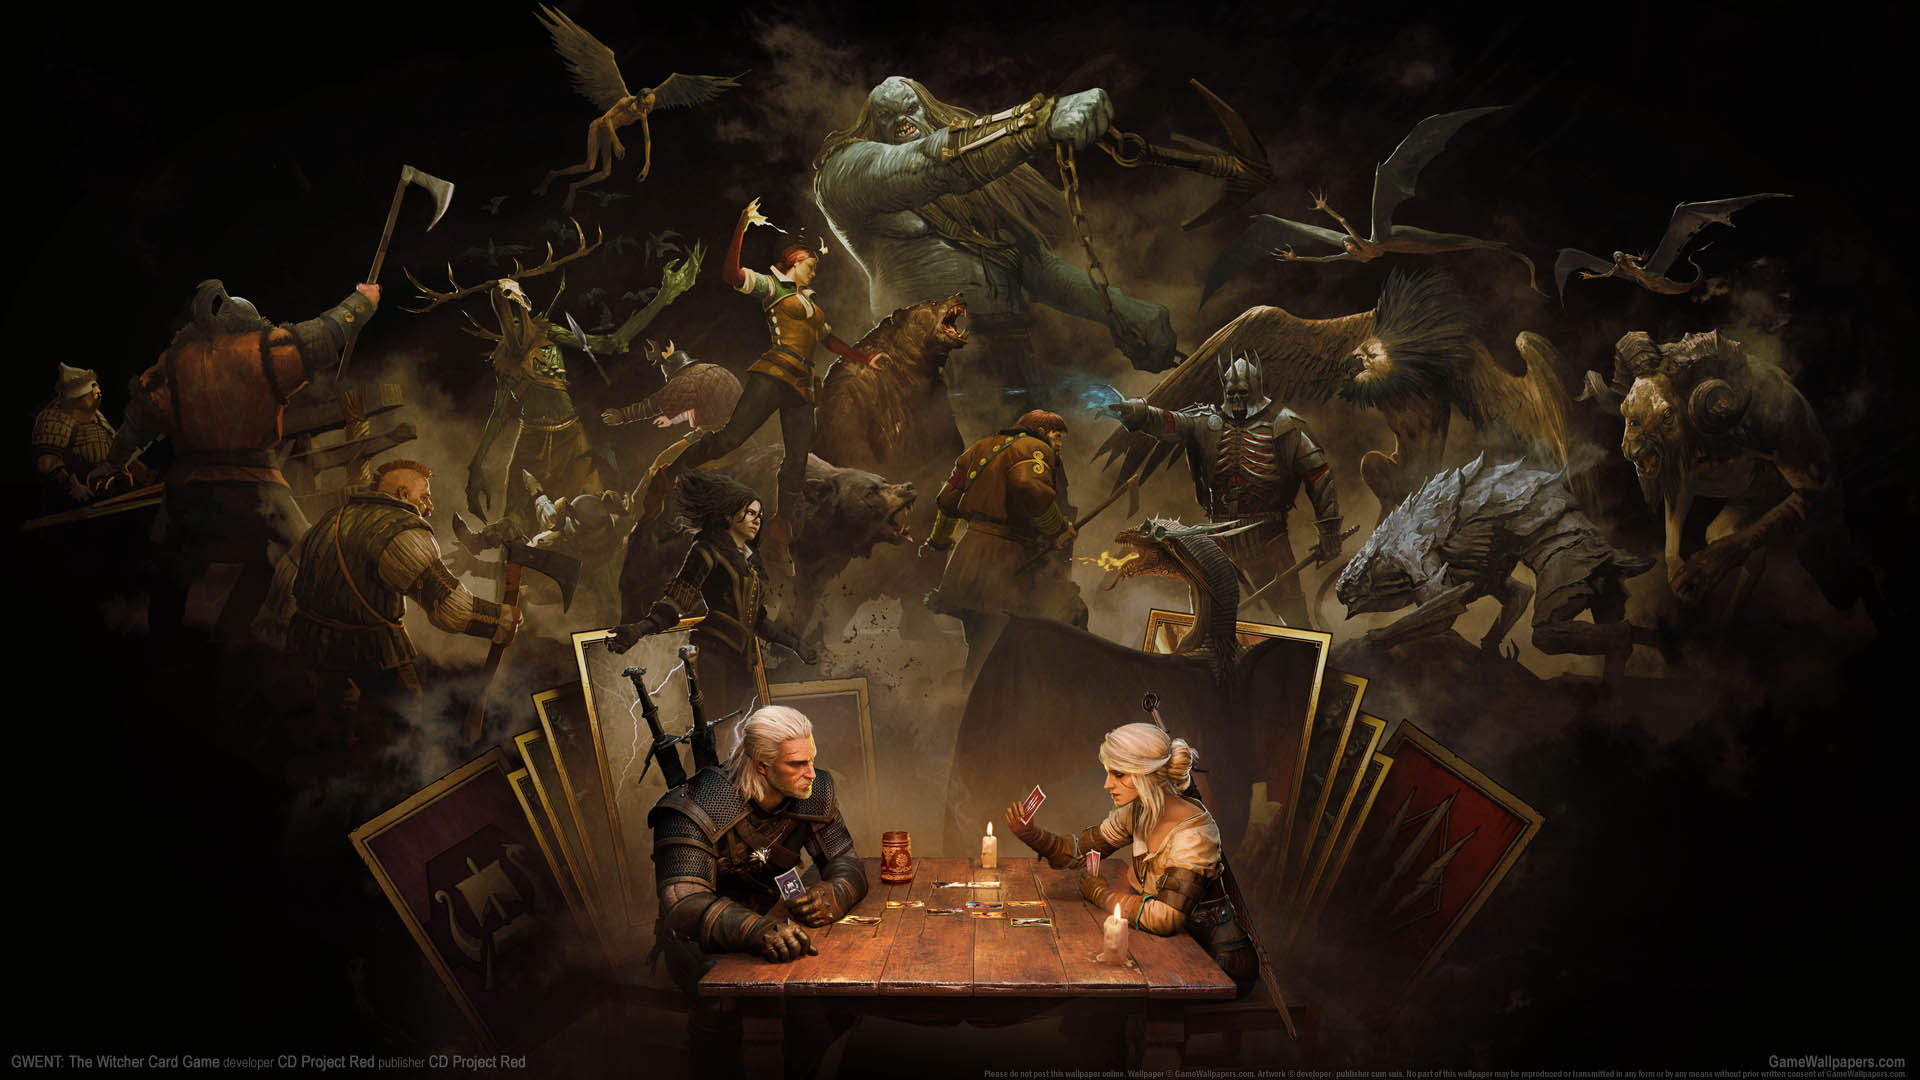 GWENT: The Witcher Card Game wallpaper 07 1920x1080